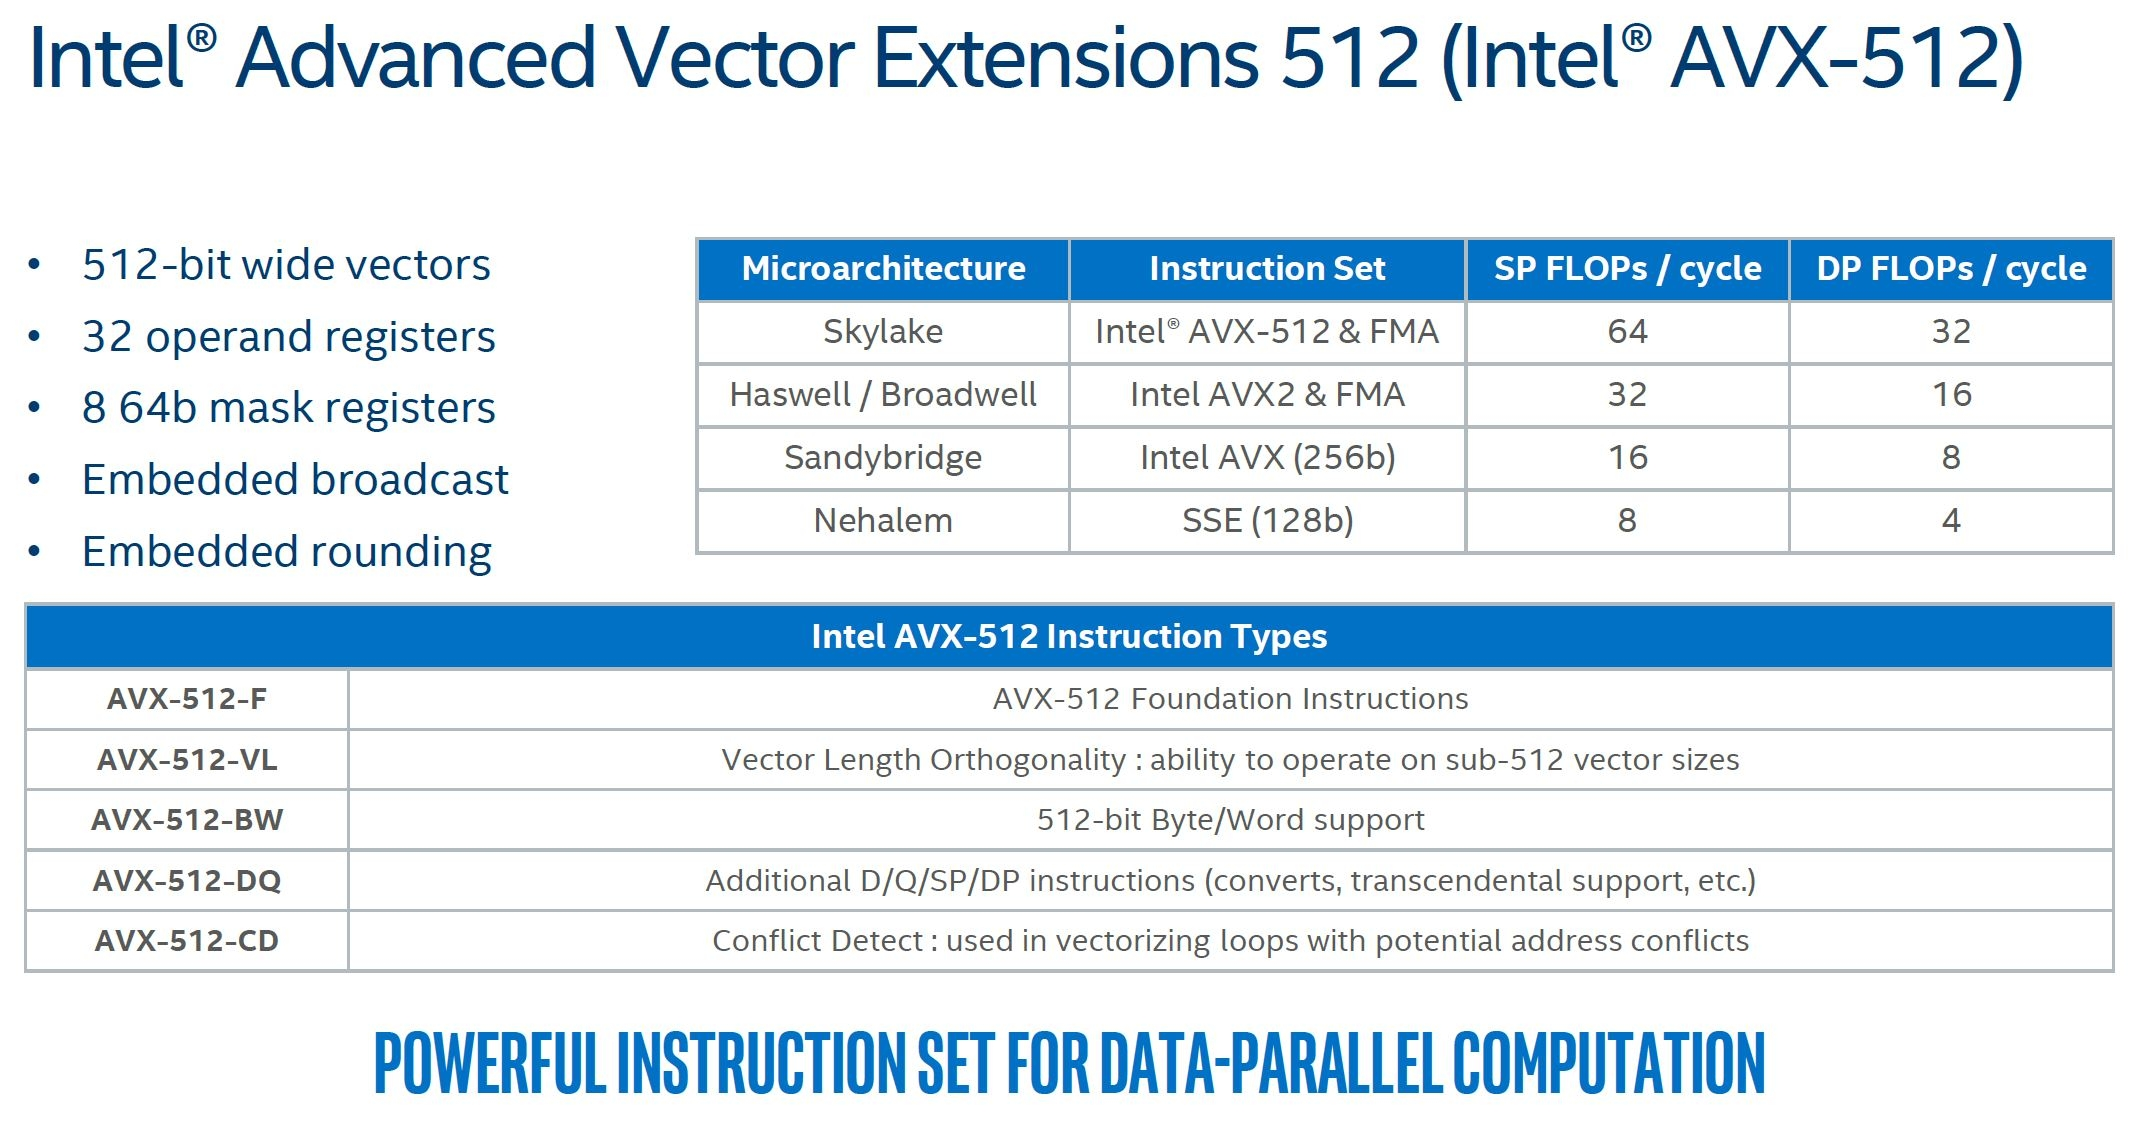 Intel® Advanced Vector Extensions 512 (Intel® AVX-512)